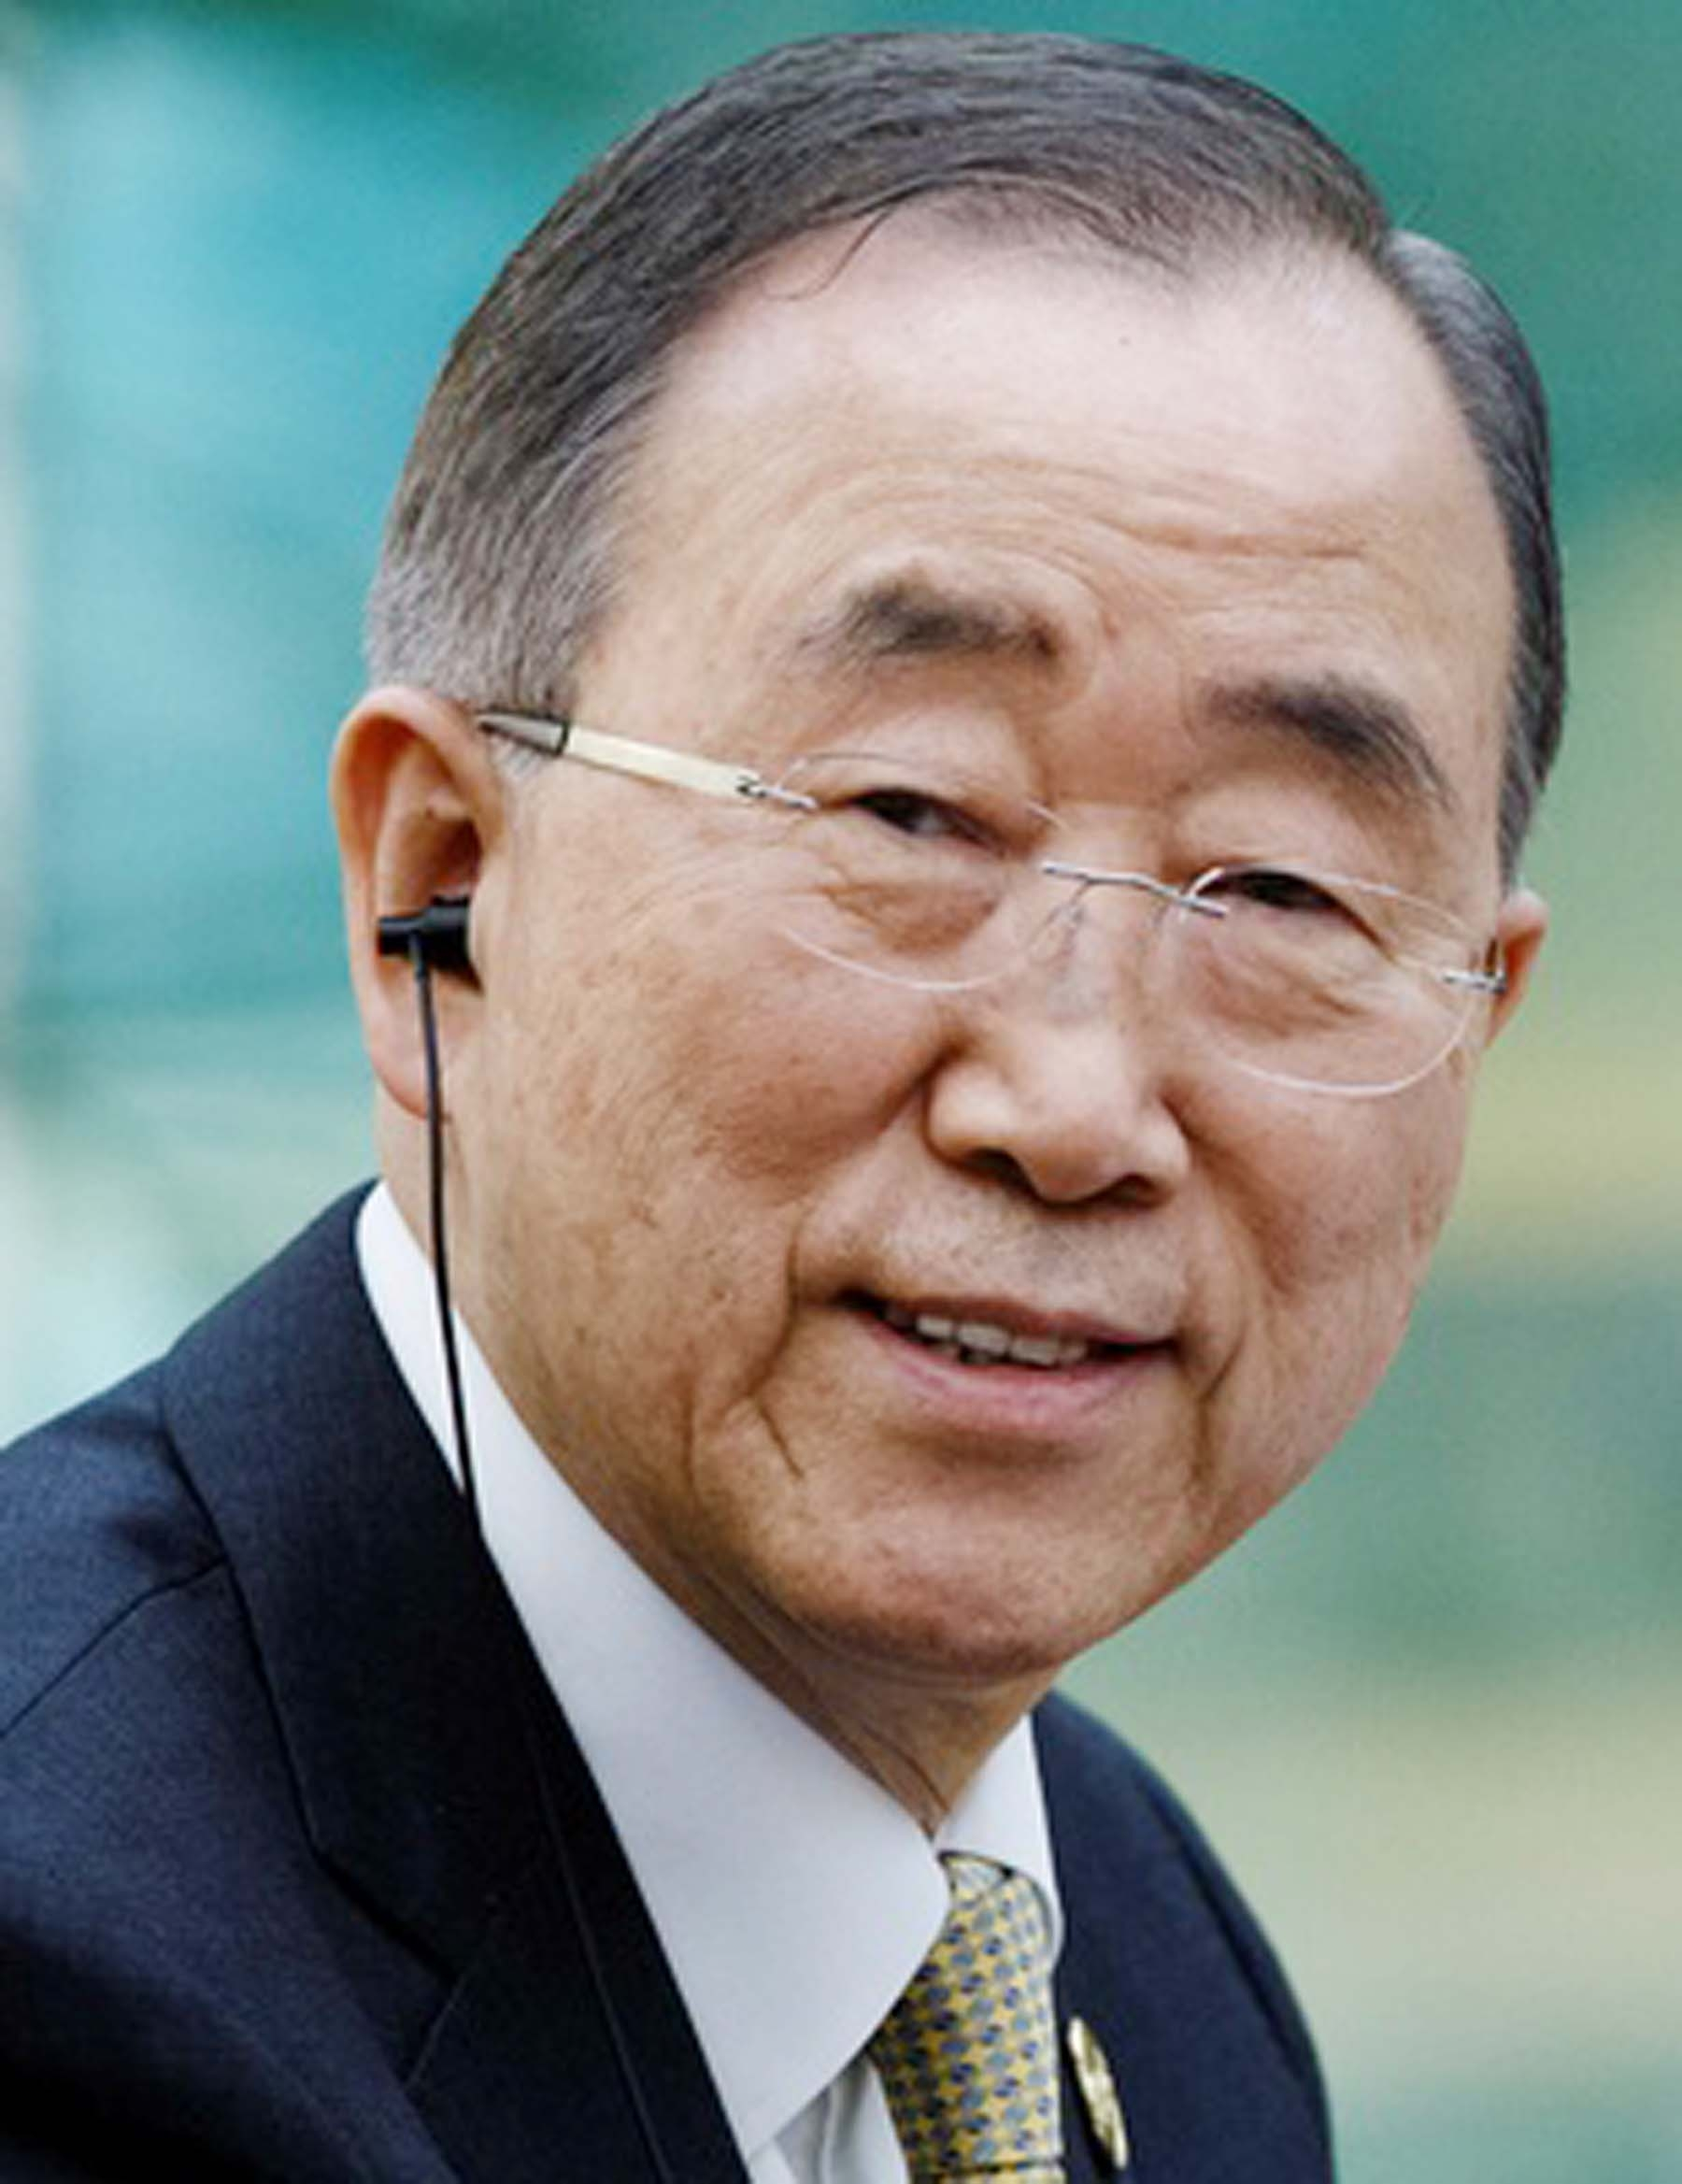 Ban urges Guterres to engage directly with Myanmar army